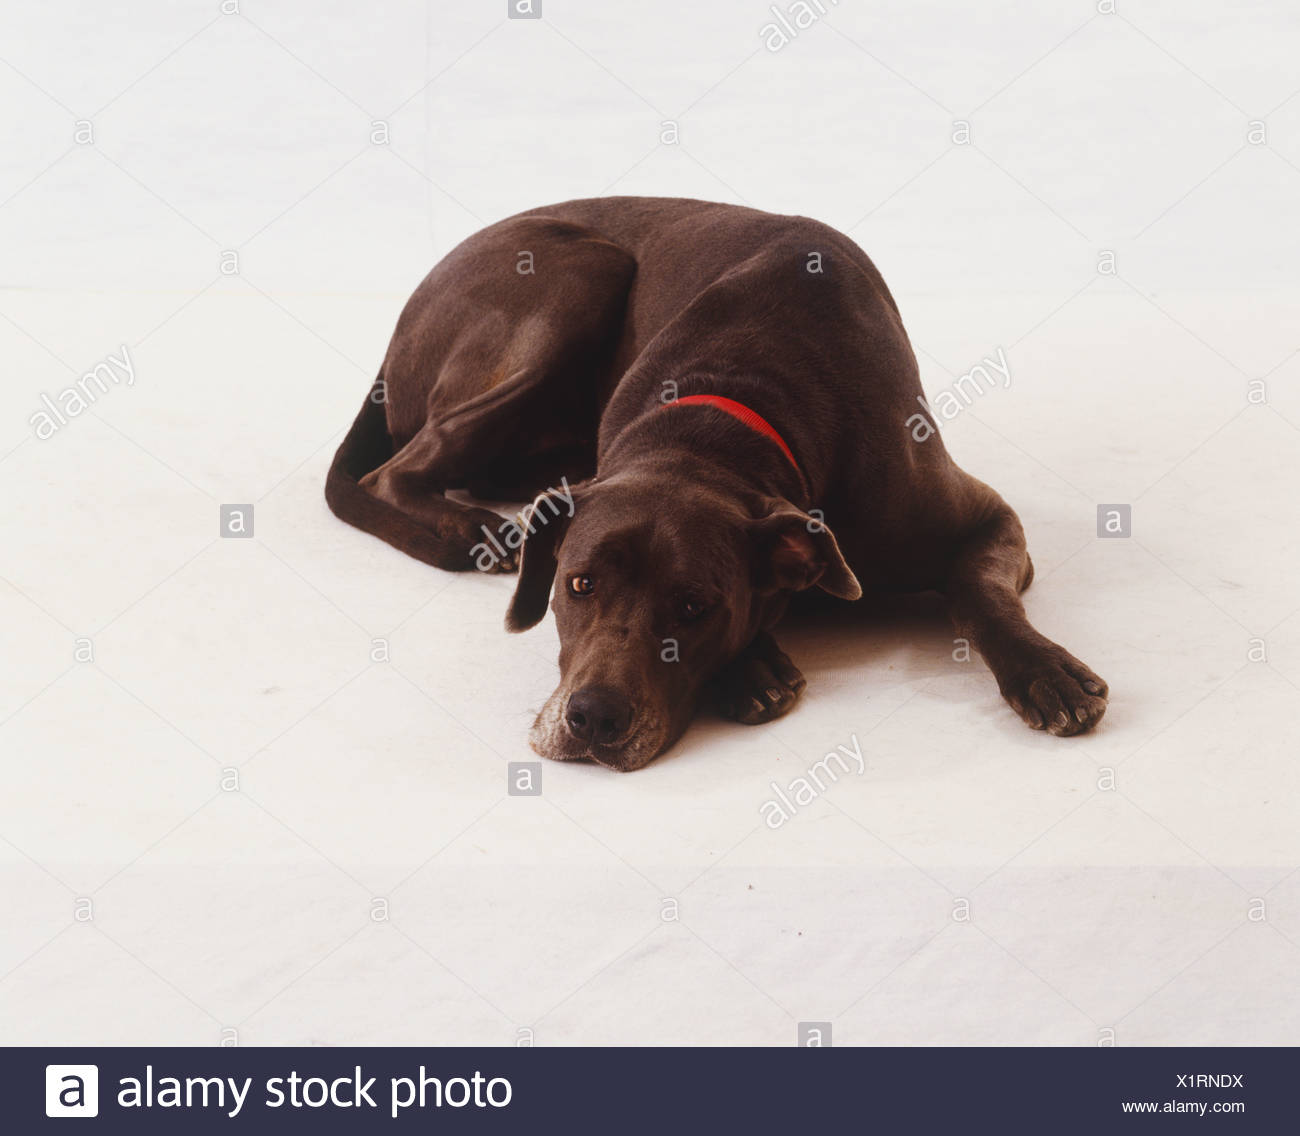 Chocolate brown Great Dane wearing red collar, lying down sleepily, glossy fur, front view. - Stock Image